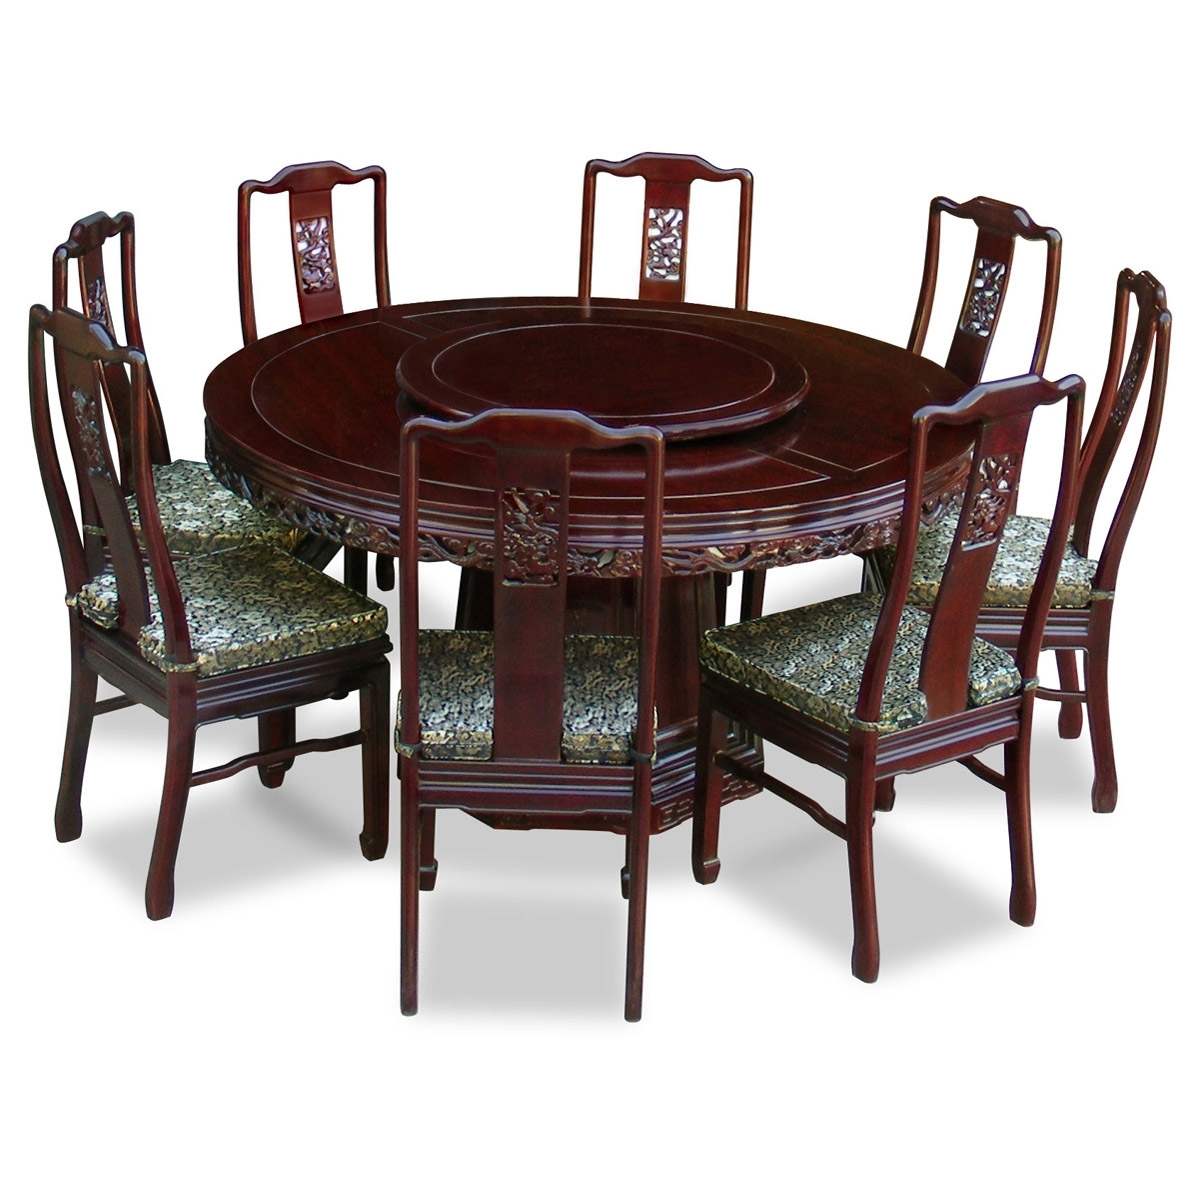 60In Rosewood Dragon Round Dining Table With 8 Chairs Inside Current Dining Tables With 8 Chairs (Gallery 13 of 25)